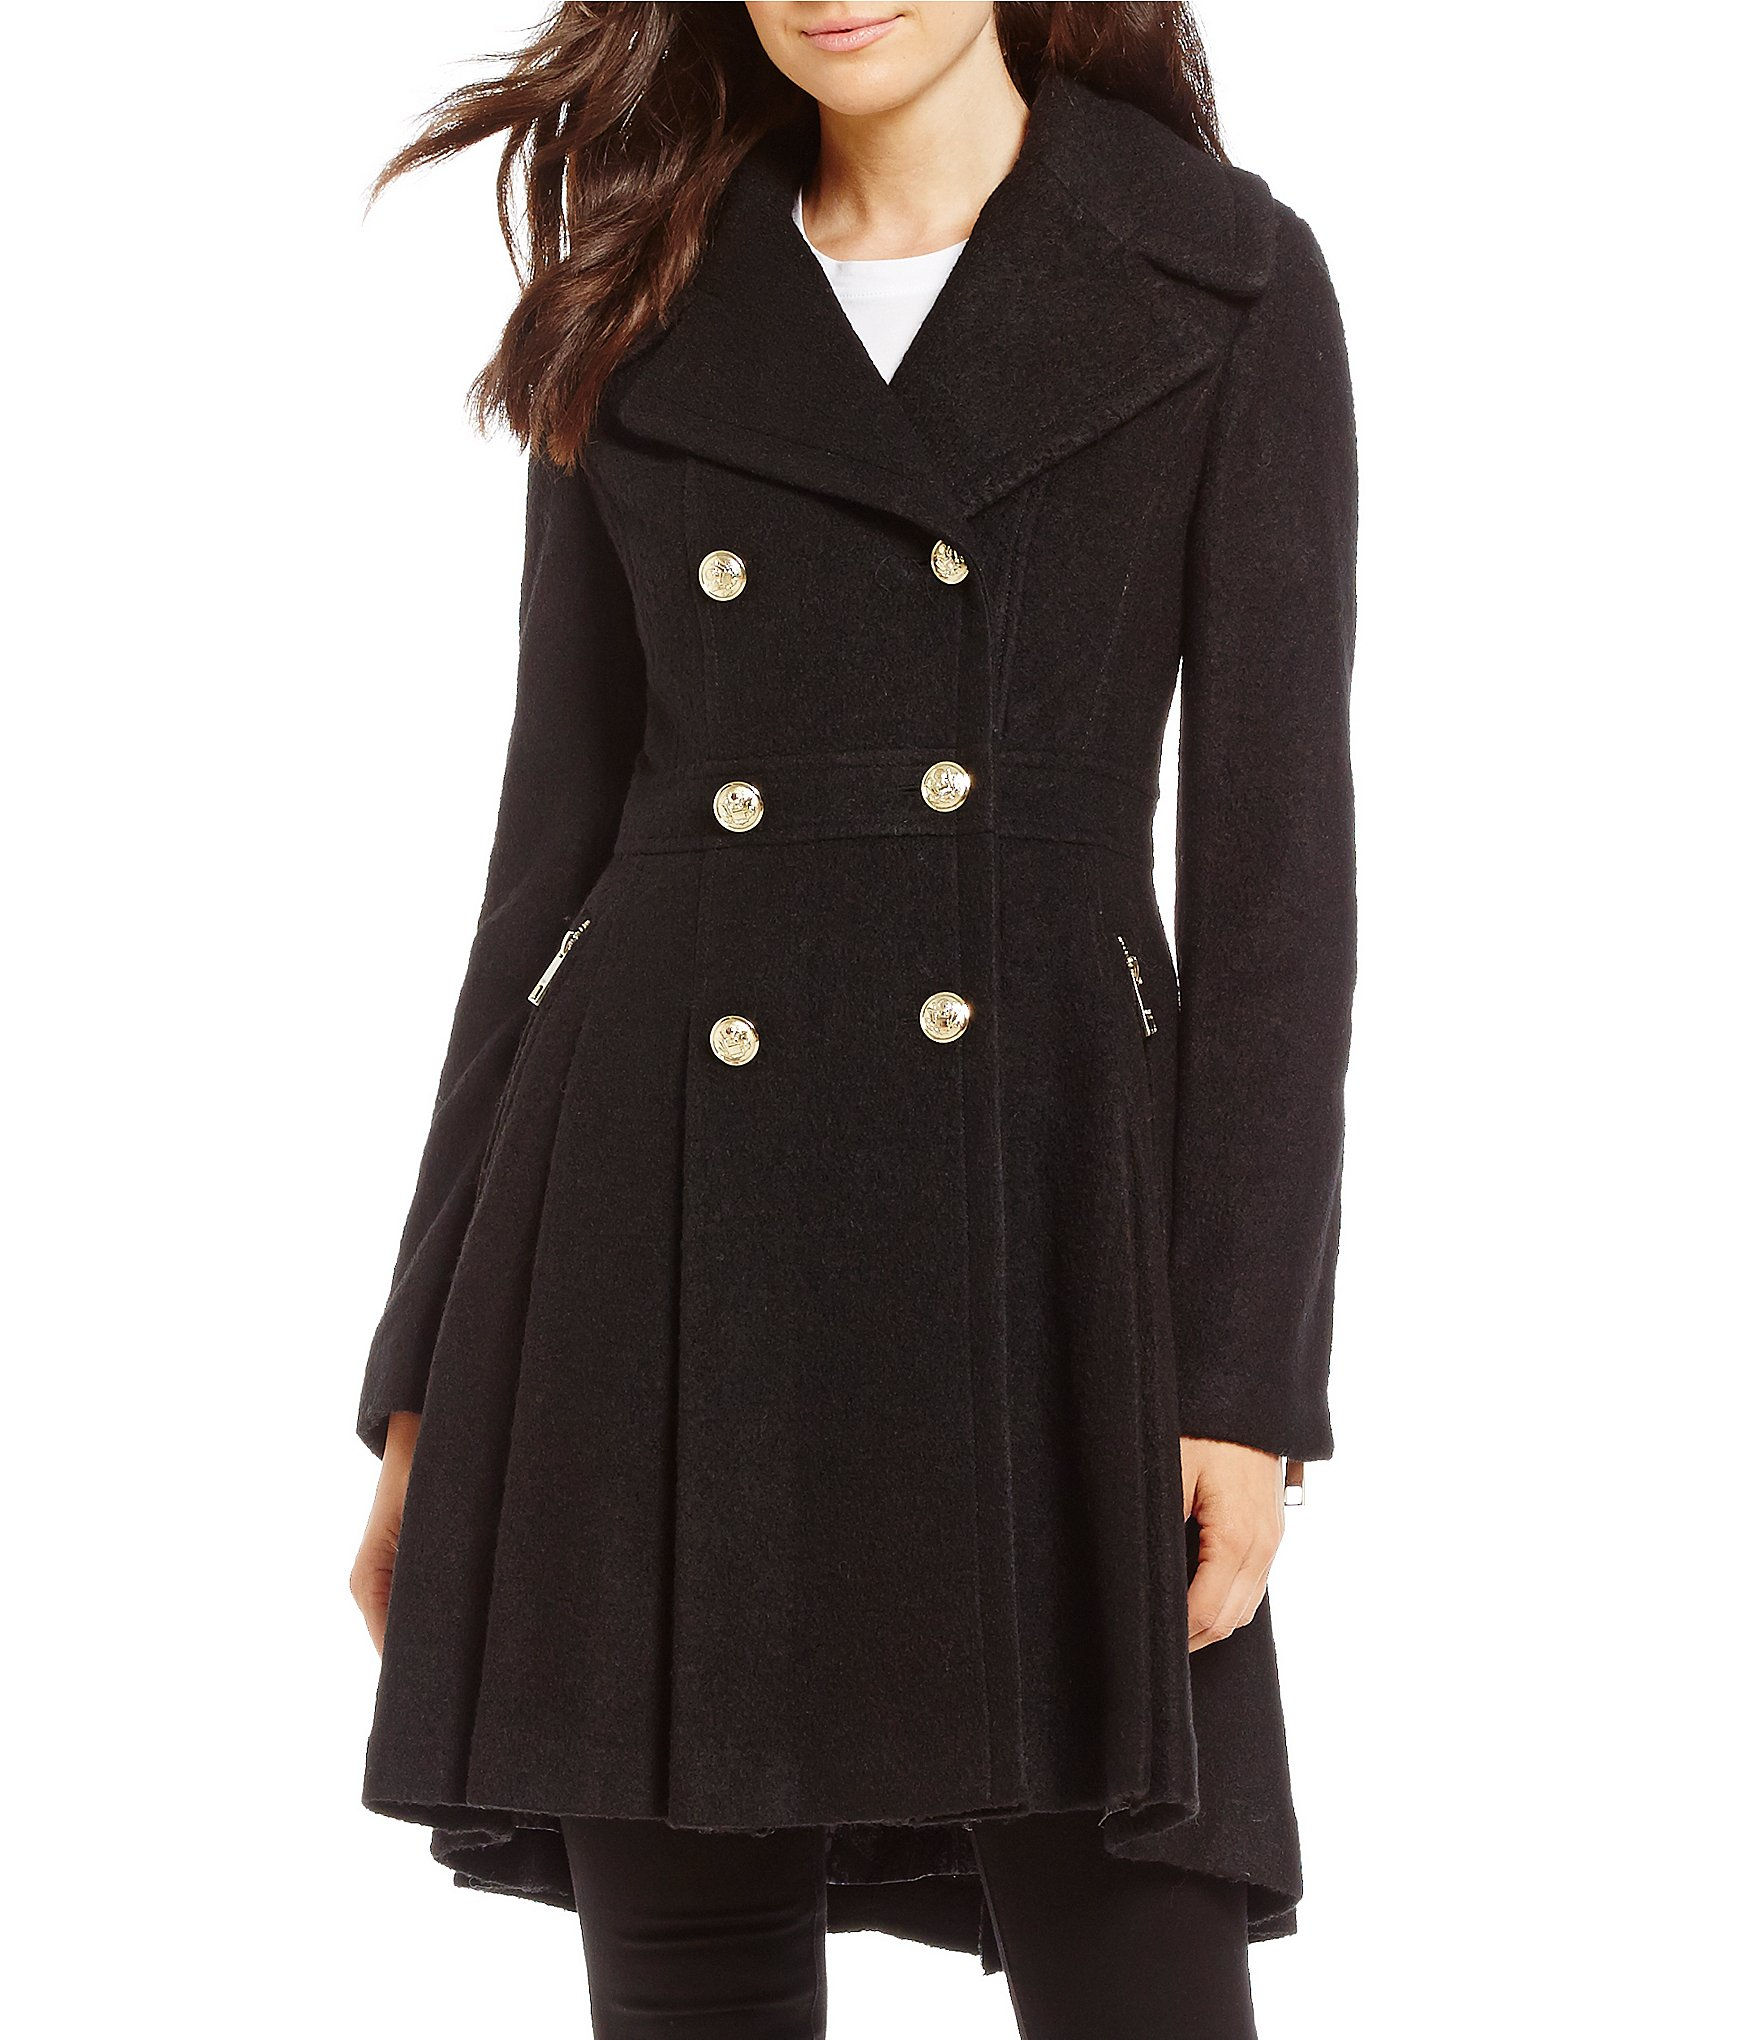 Womens Wool Coats Han Coats